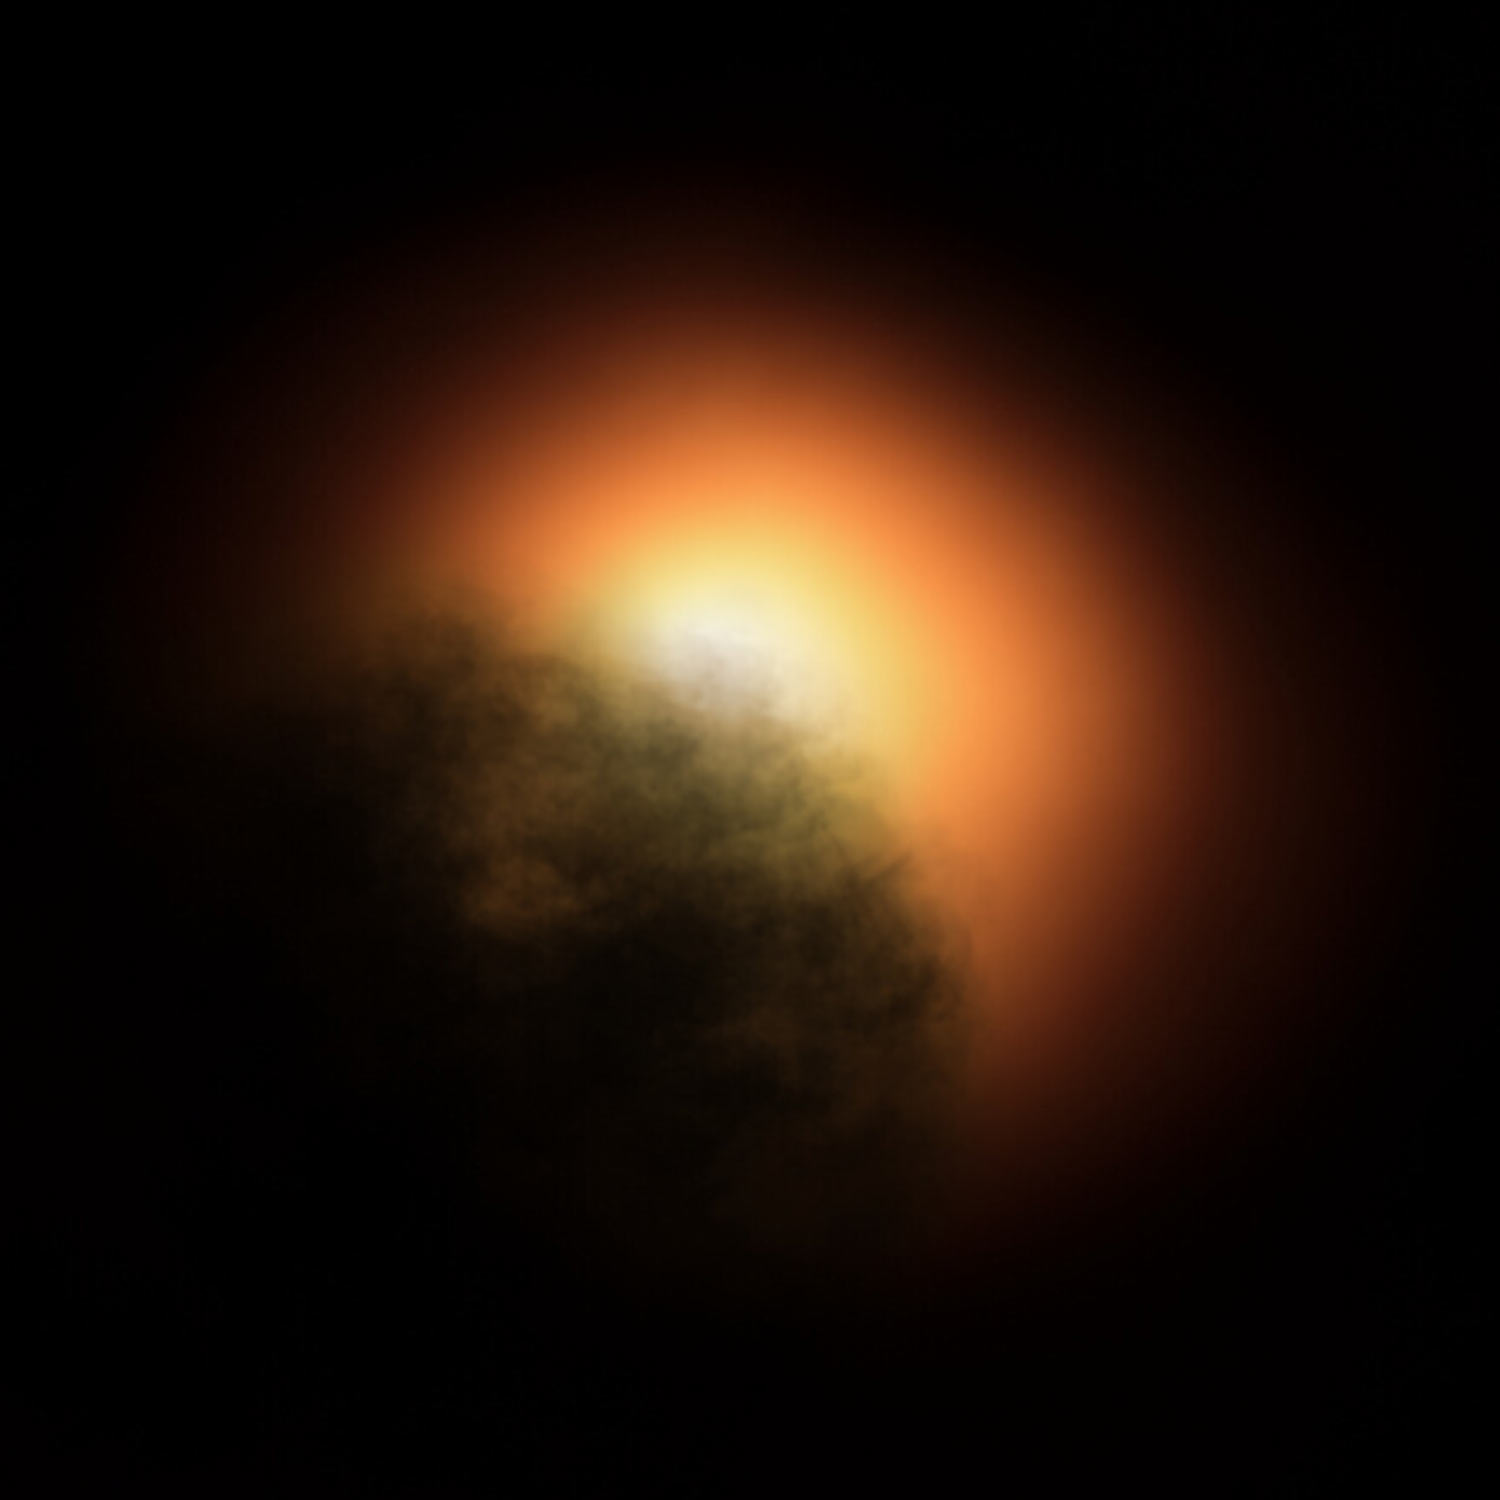 Hubble helps uncover the mystery of the dimming of Betelgeuse